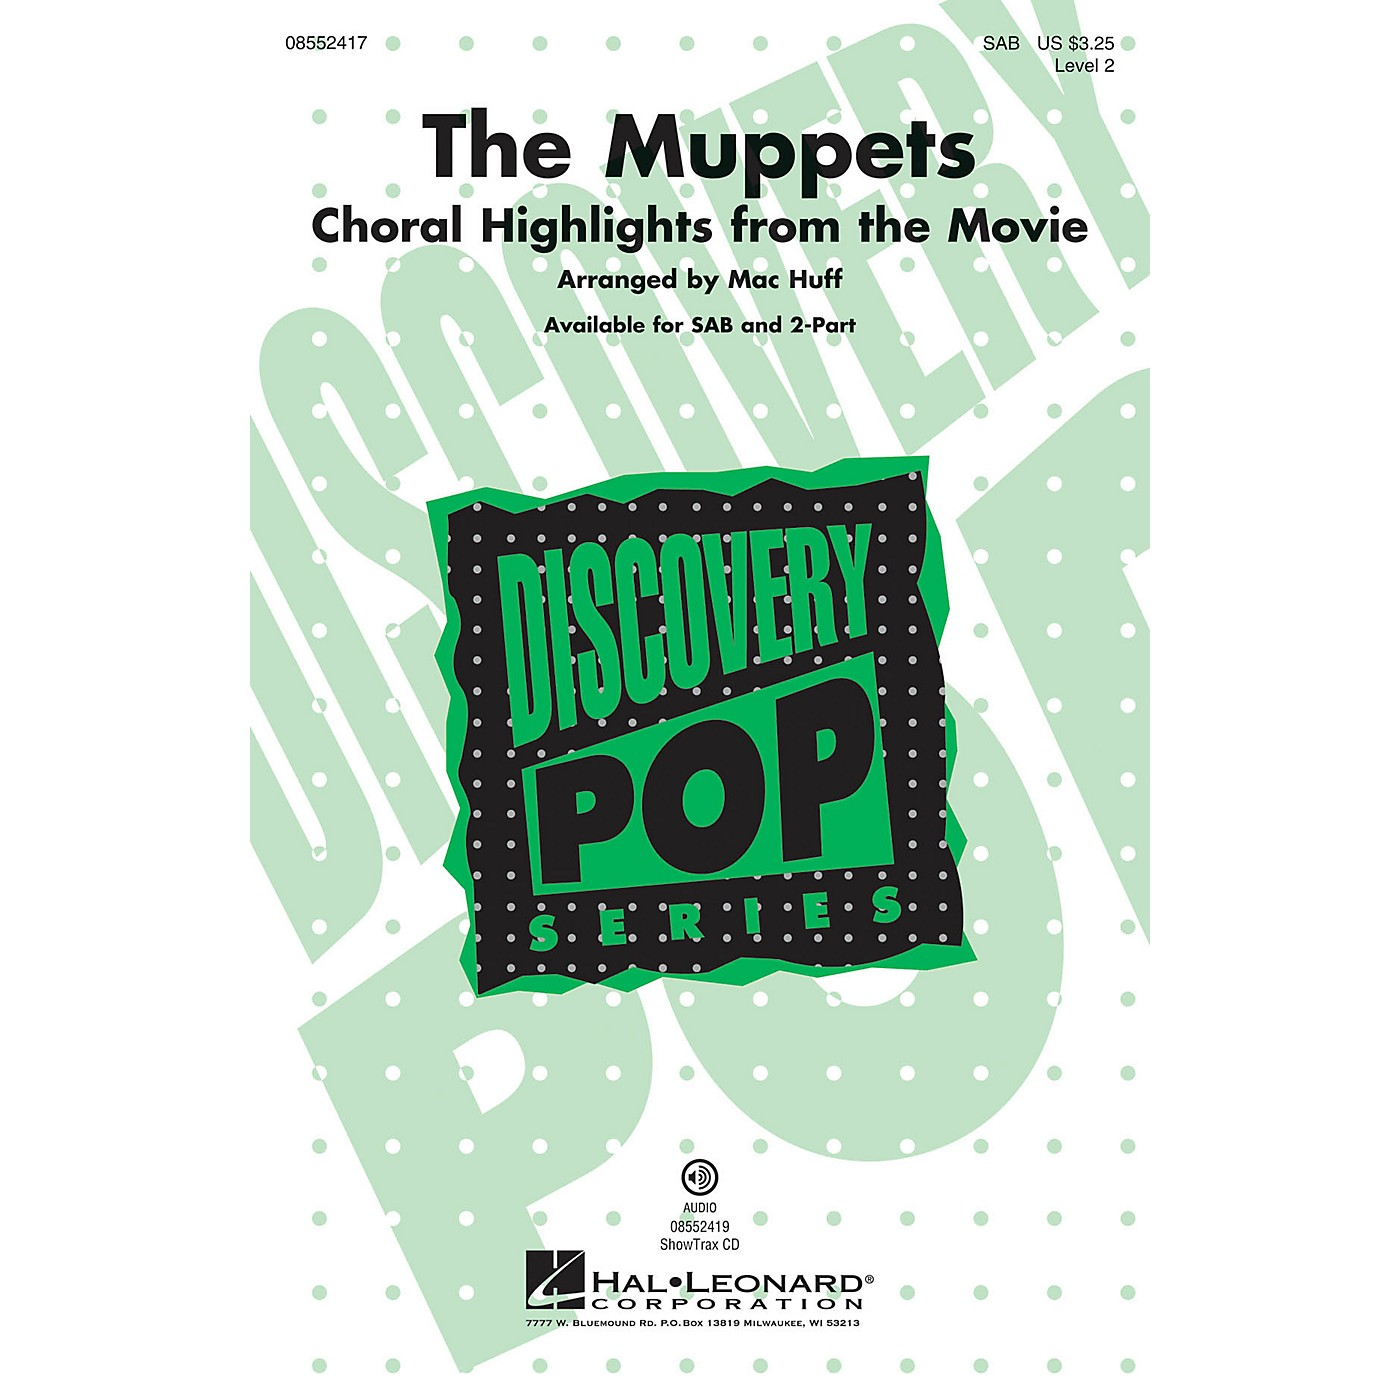 Hal Leonard The Muppets (Choral Highlights from the Movie) SAB by The Muppets arranged by Mac Huff thumbnail